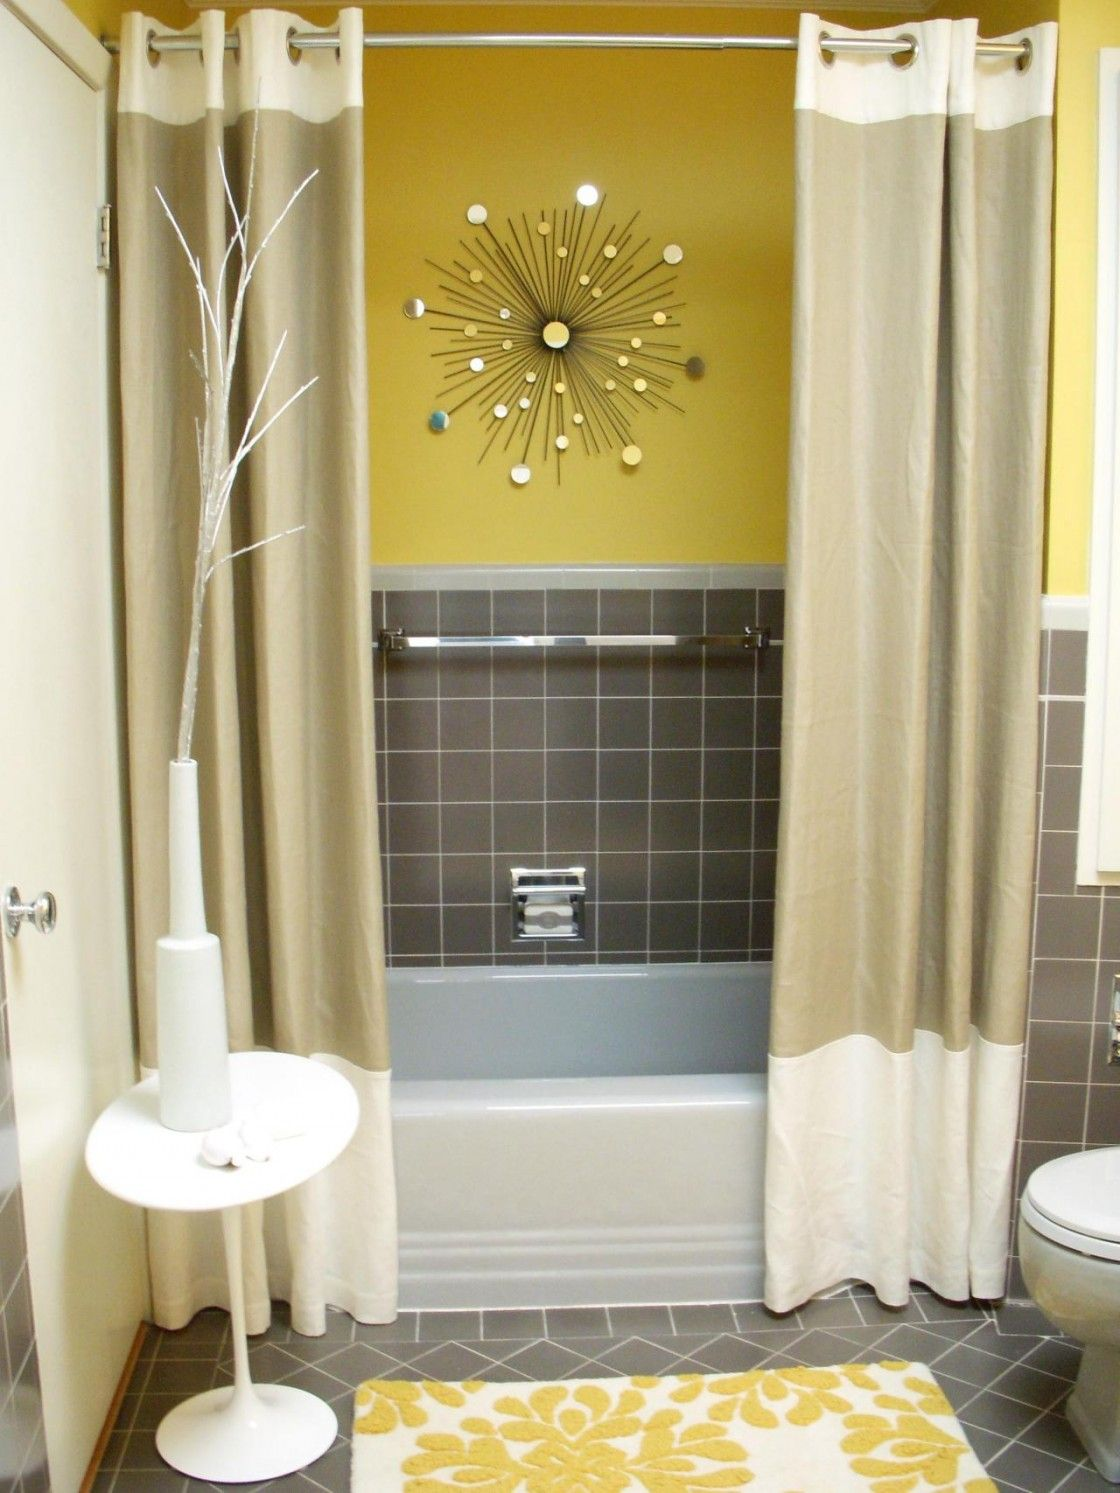 Amusing yellow gray bathroom wall color scheme with lovely sunburst ...